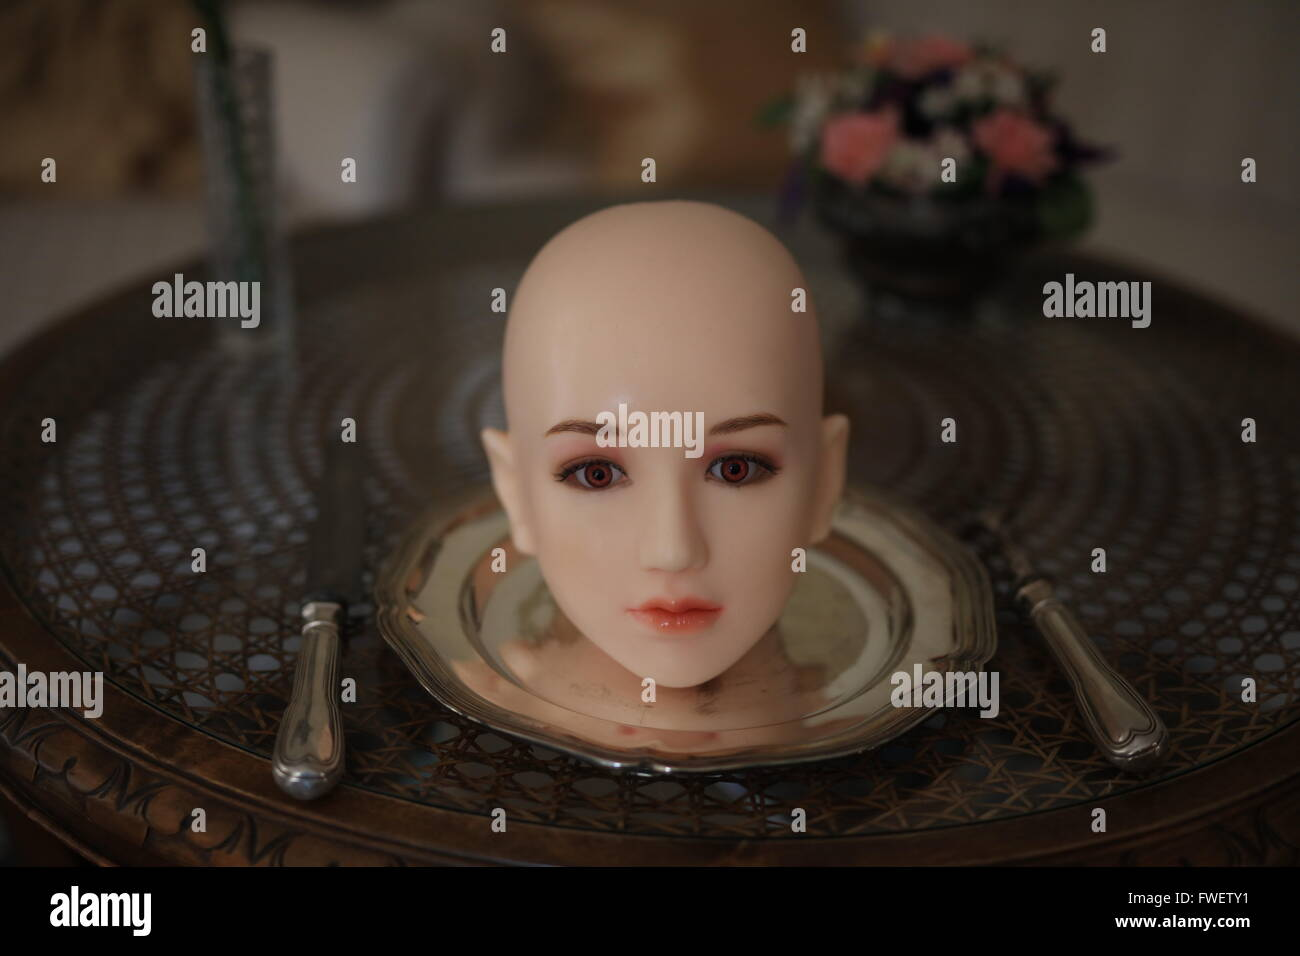 Bald head on a silver plate with cutlery - Stock Image